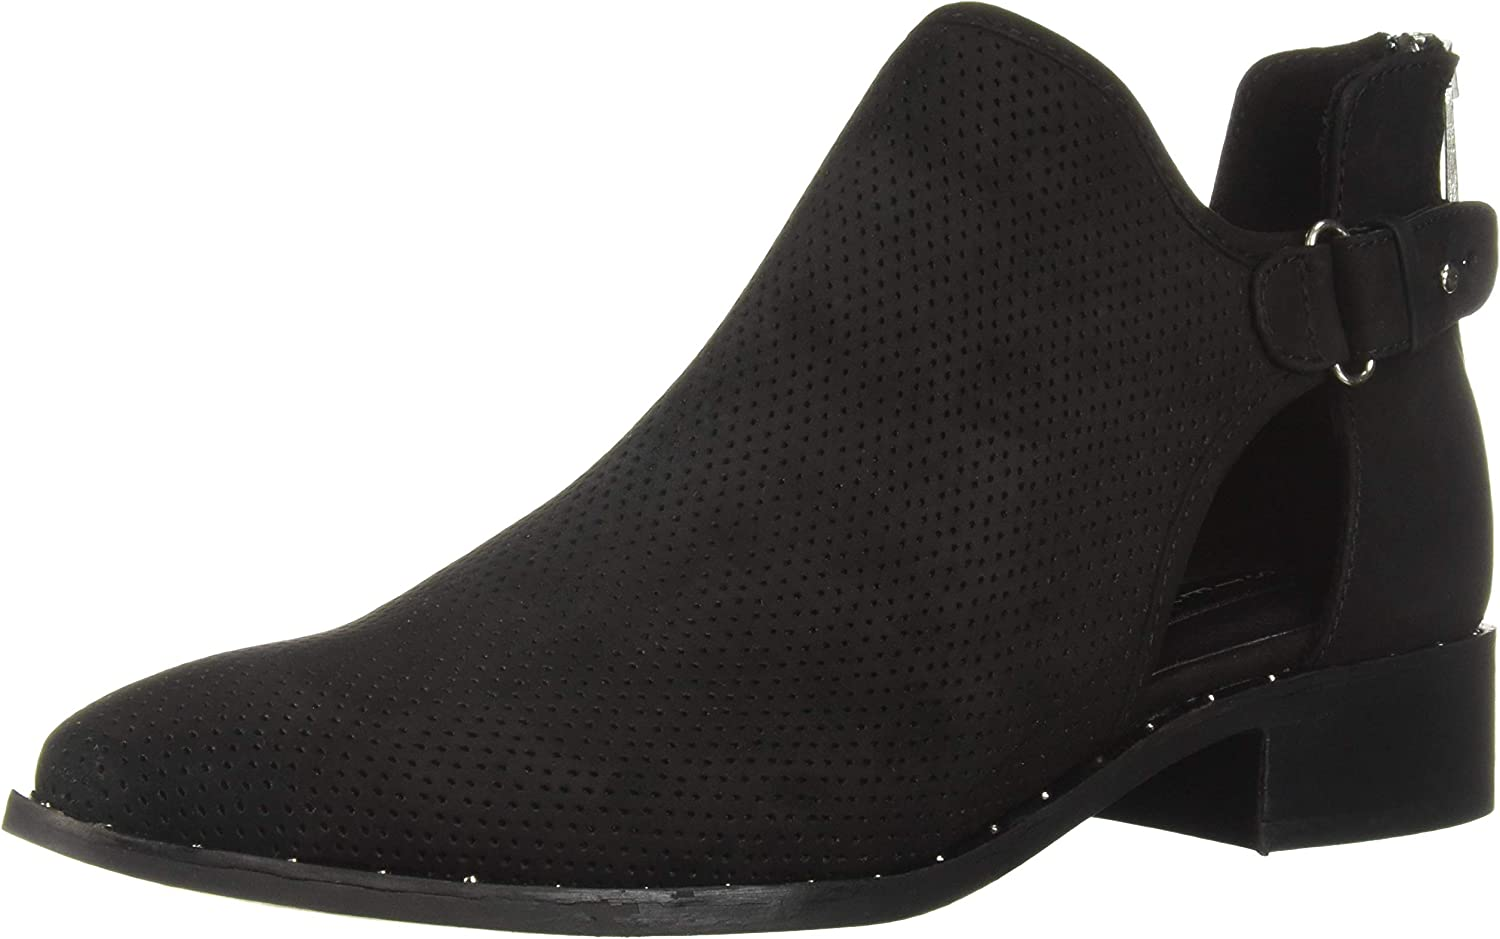 STEVEN by Steve Madden Womens Cusp Ankle Boot